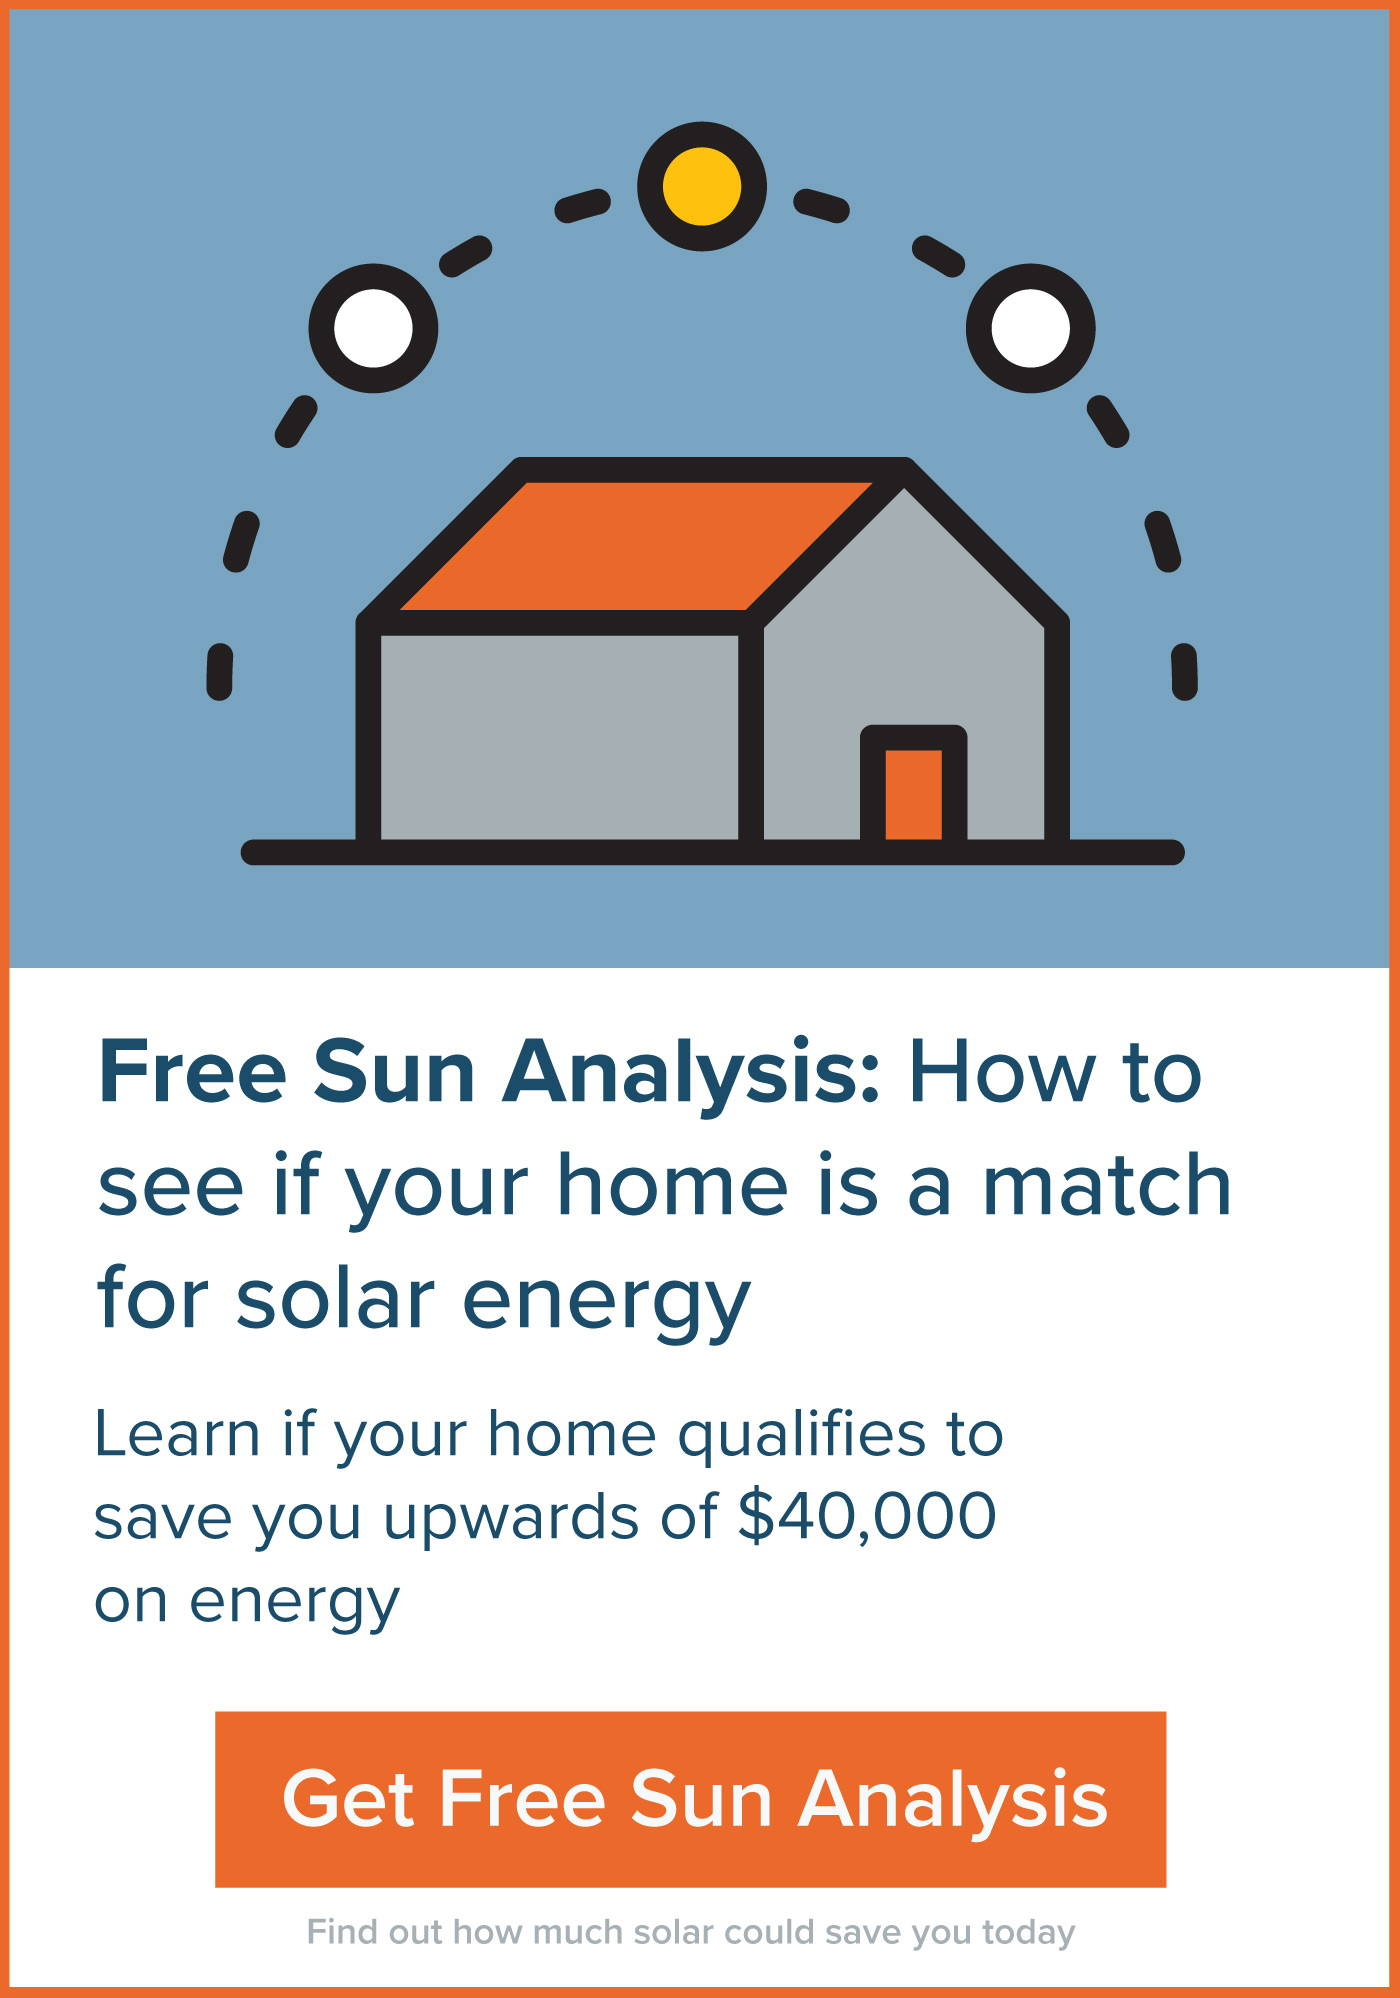 Get a free sun analysis today by clicking here